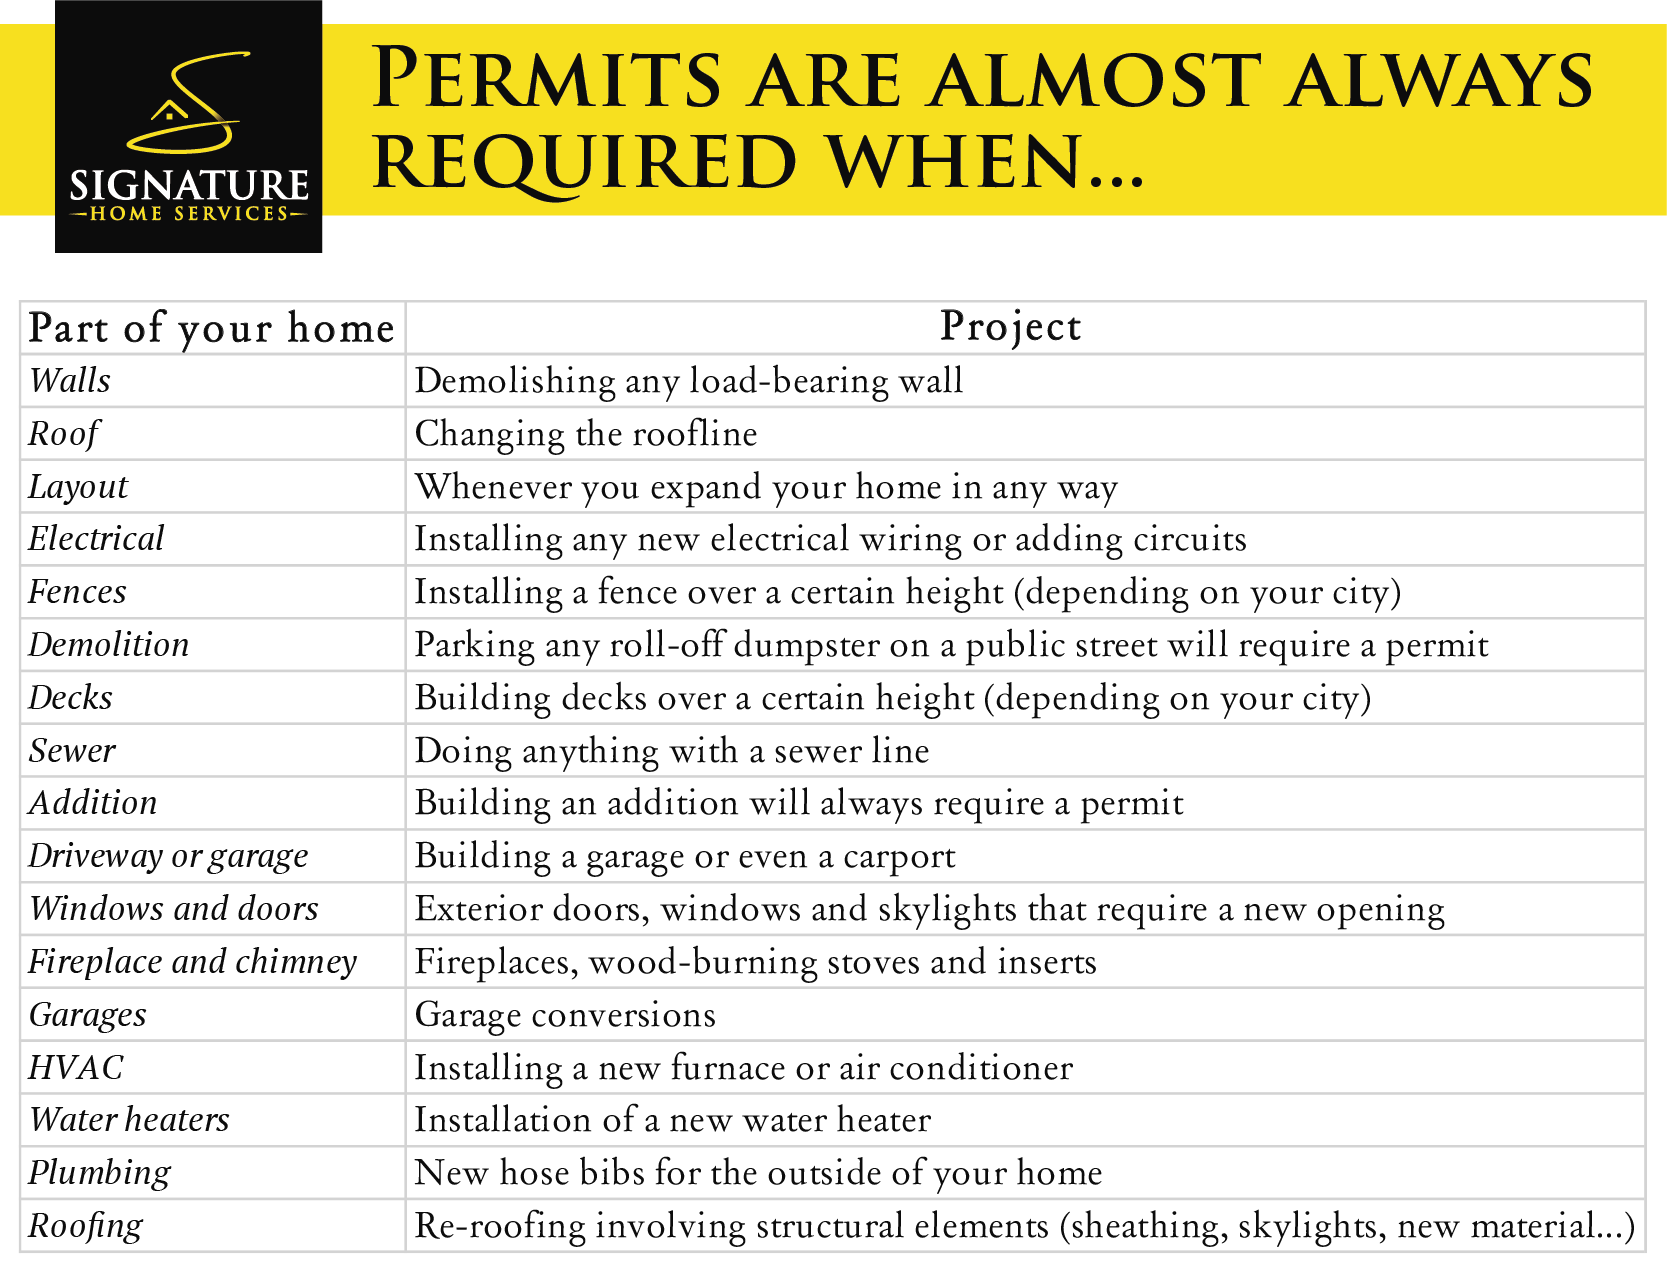 When is a permit required for home remodeling